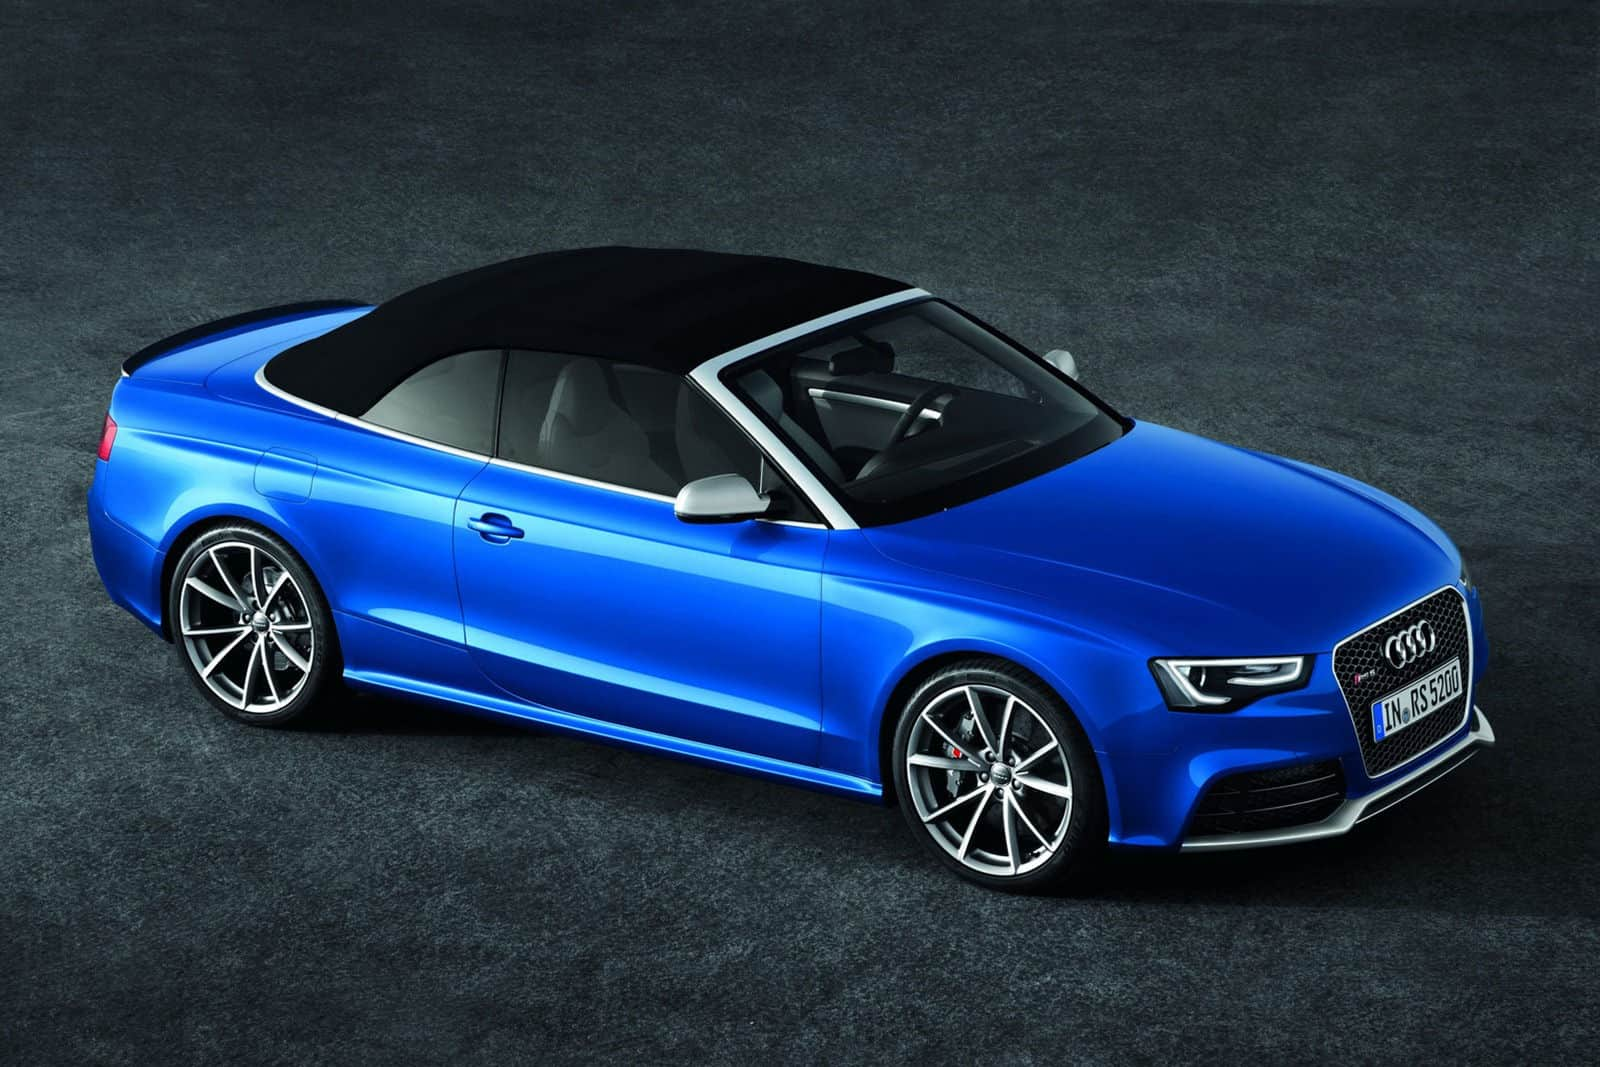 2013 Audi RS5 Cabriolet roof up